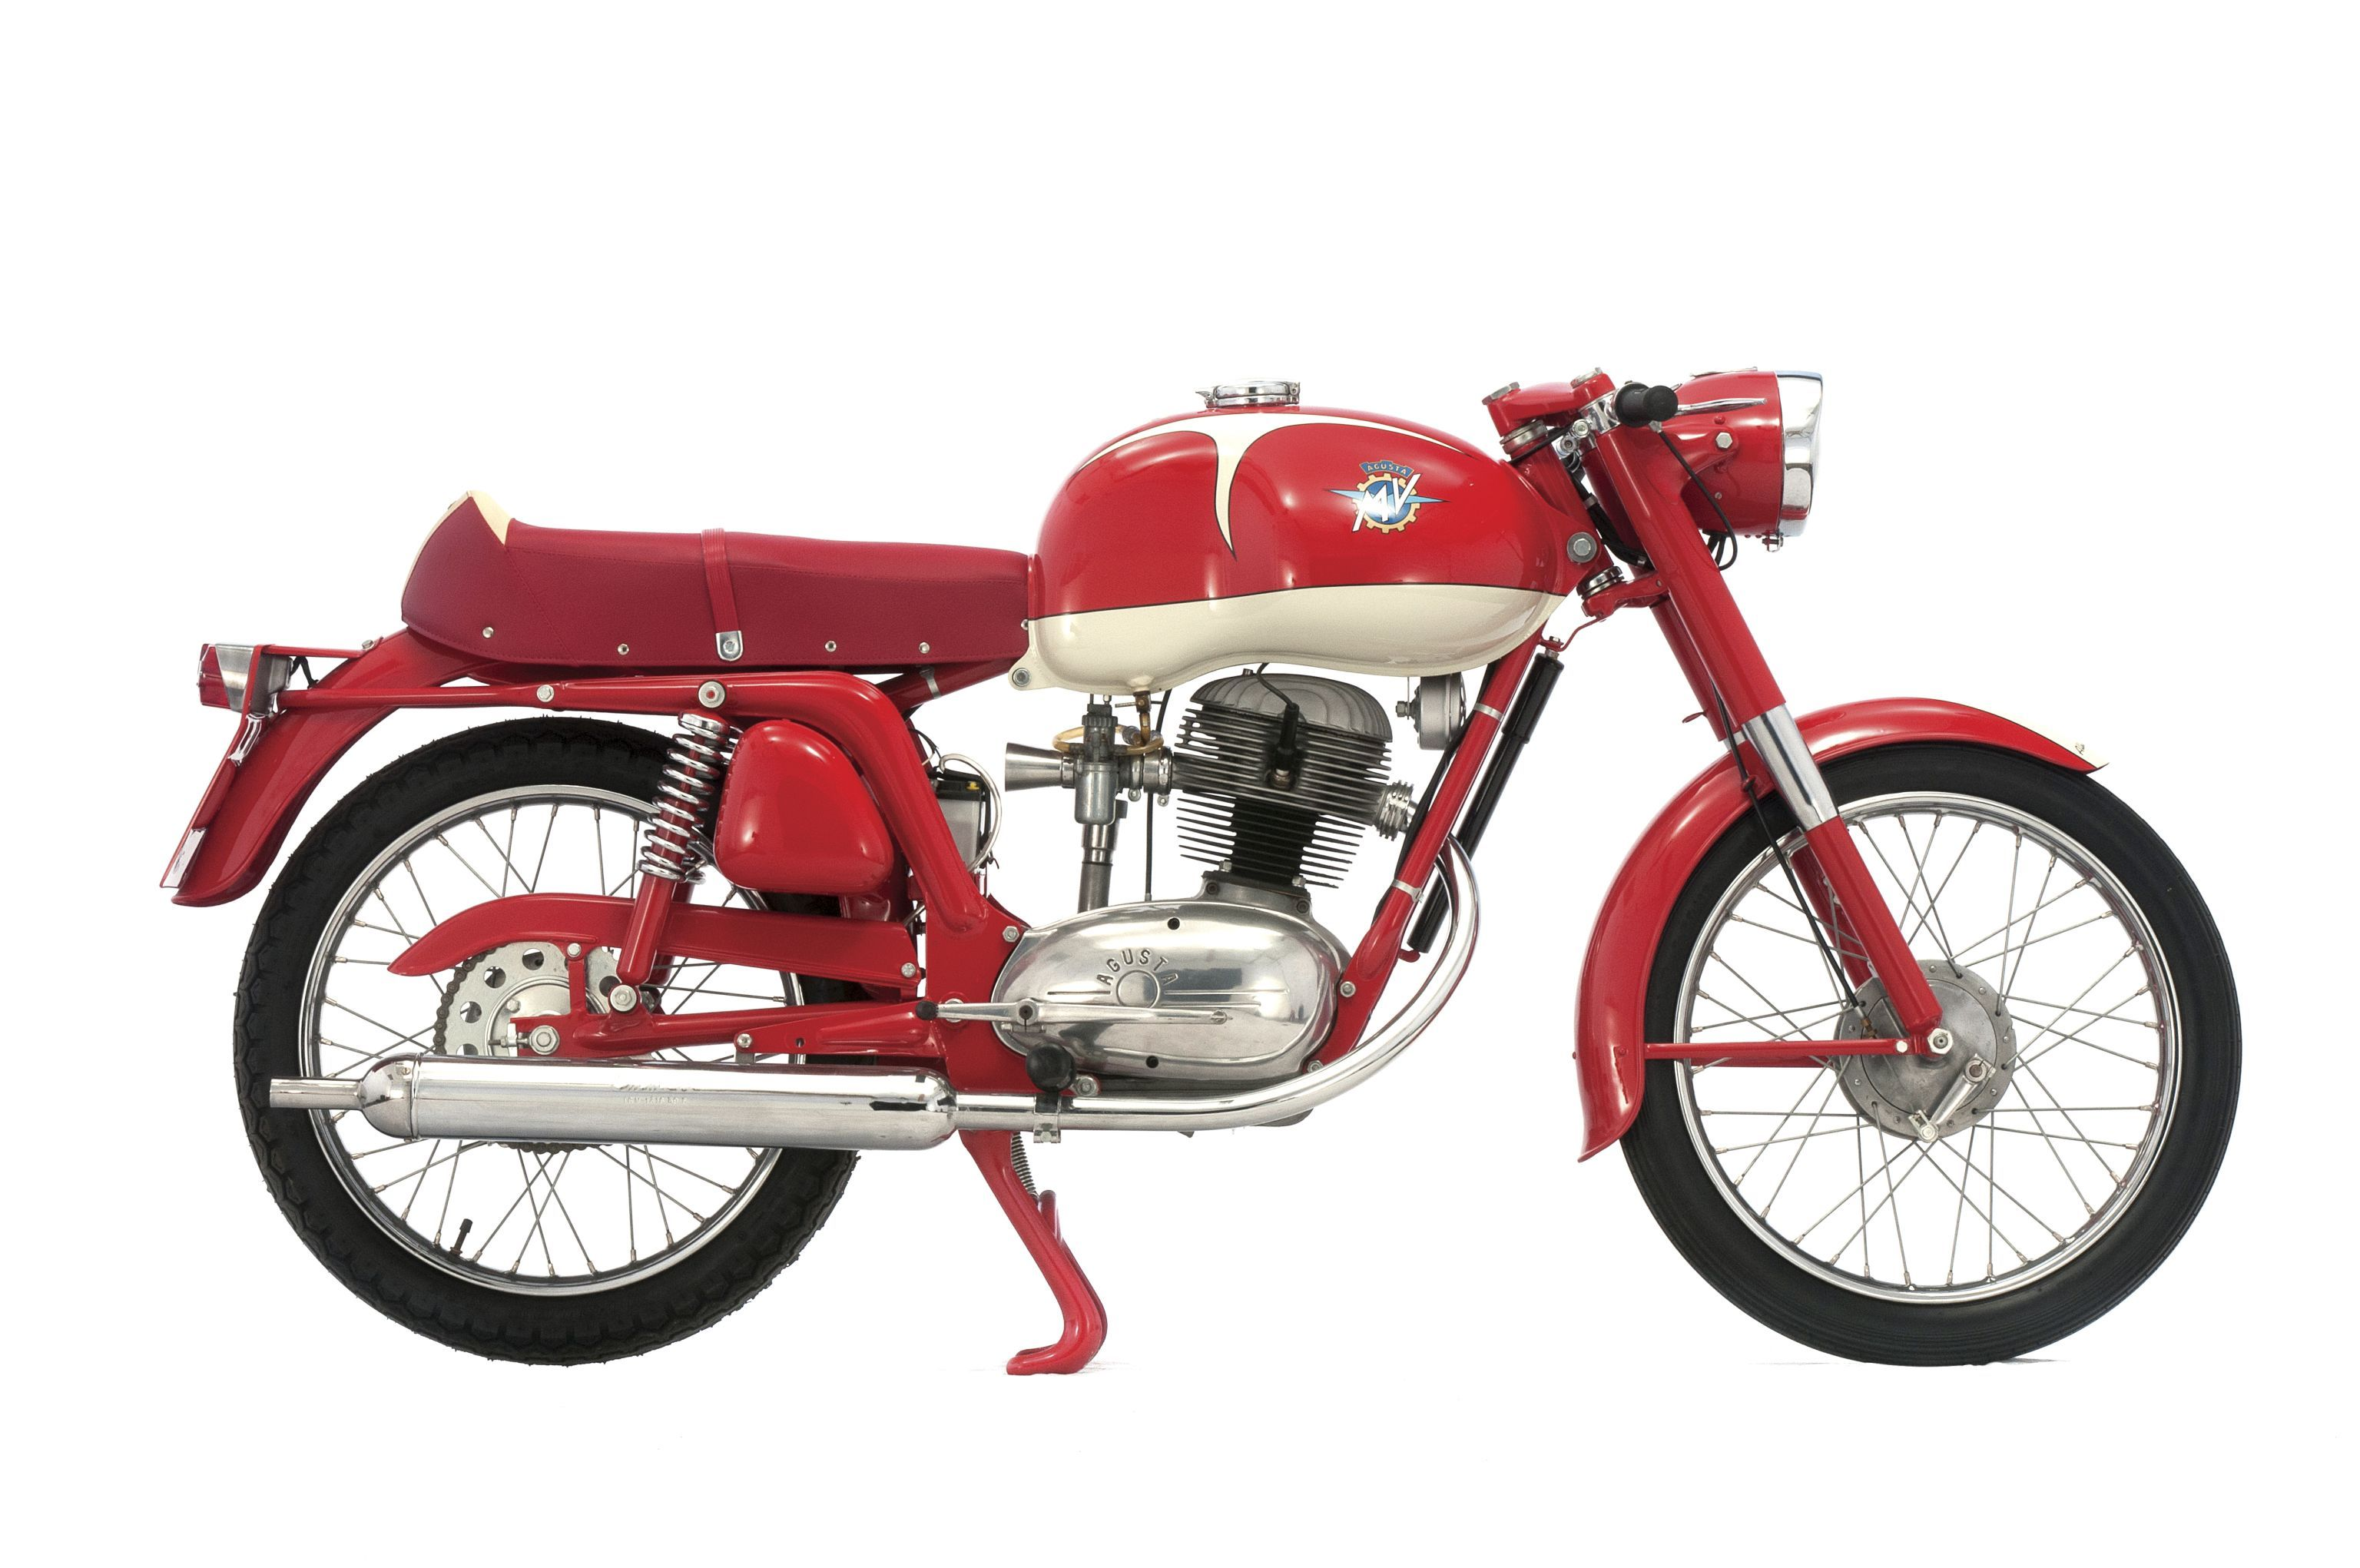 404 File Or Directory Not Found Mv Agusta Classic Motorcycles Motorcycle